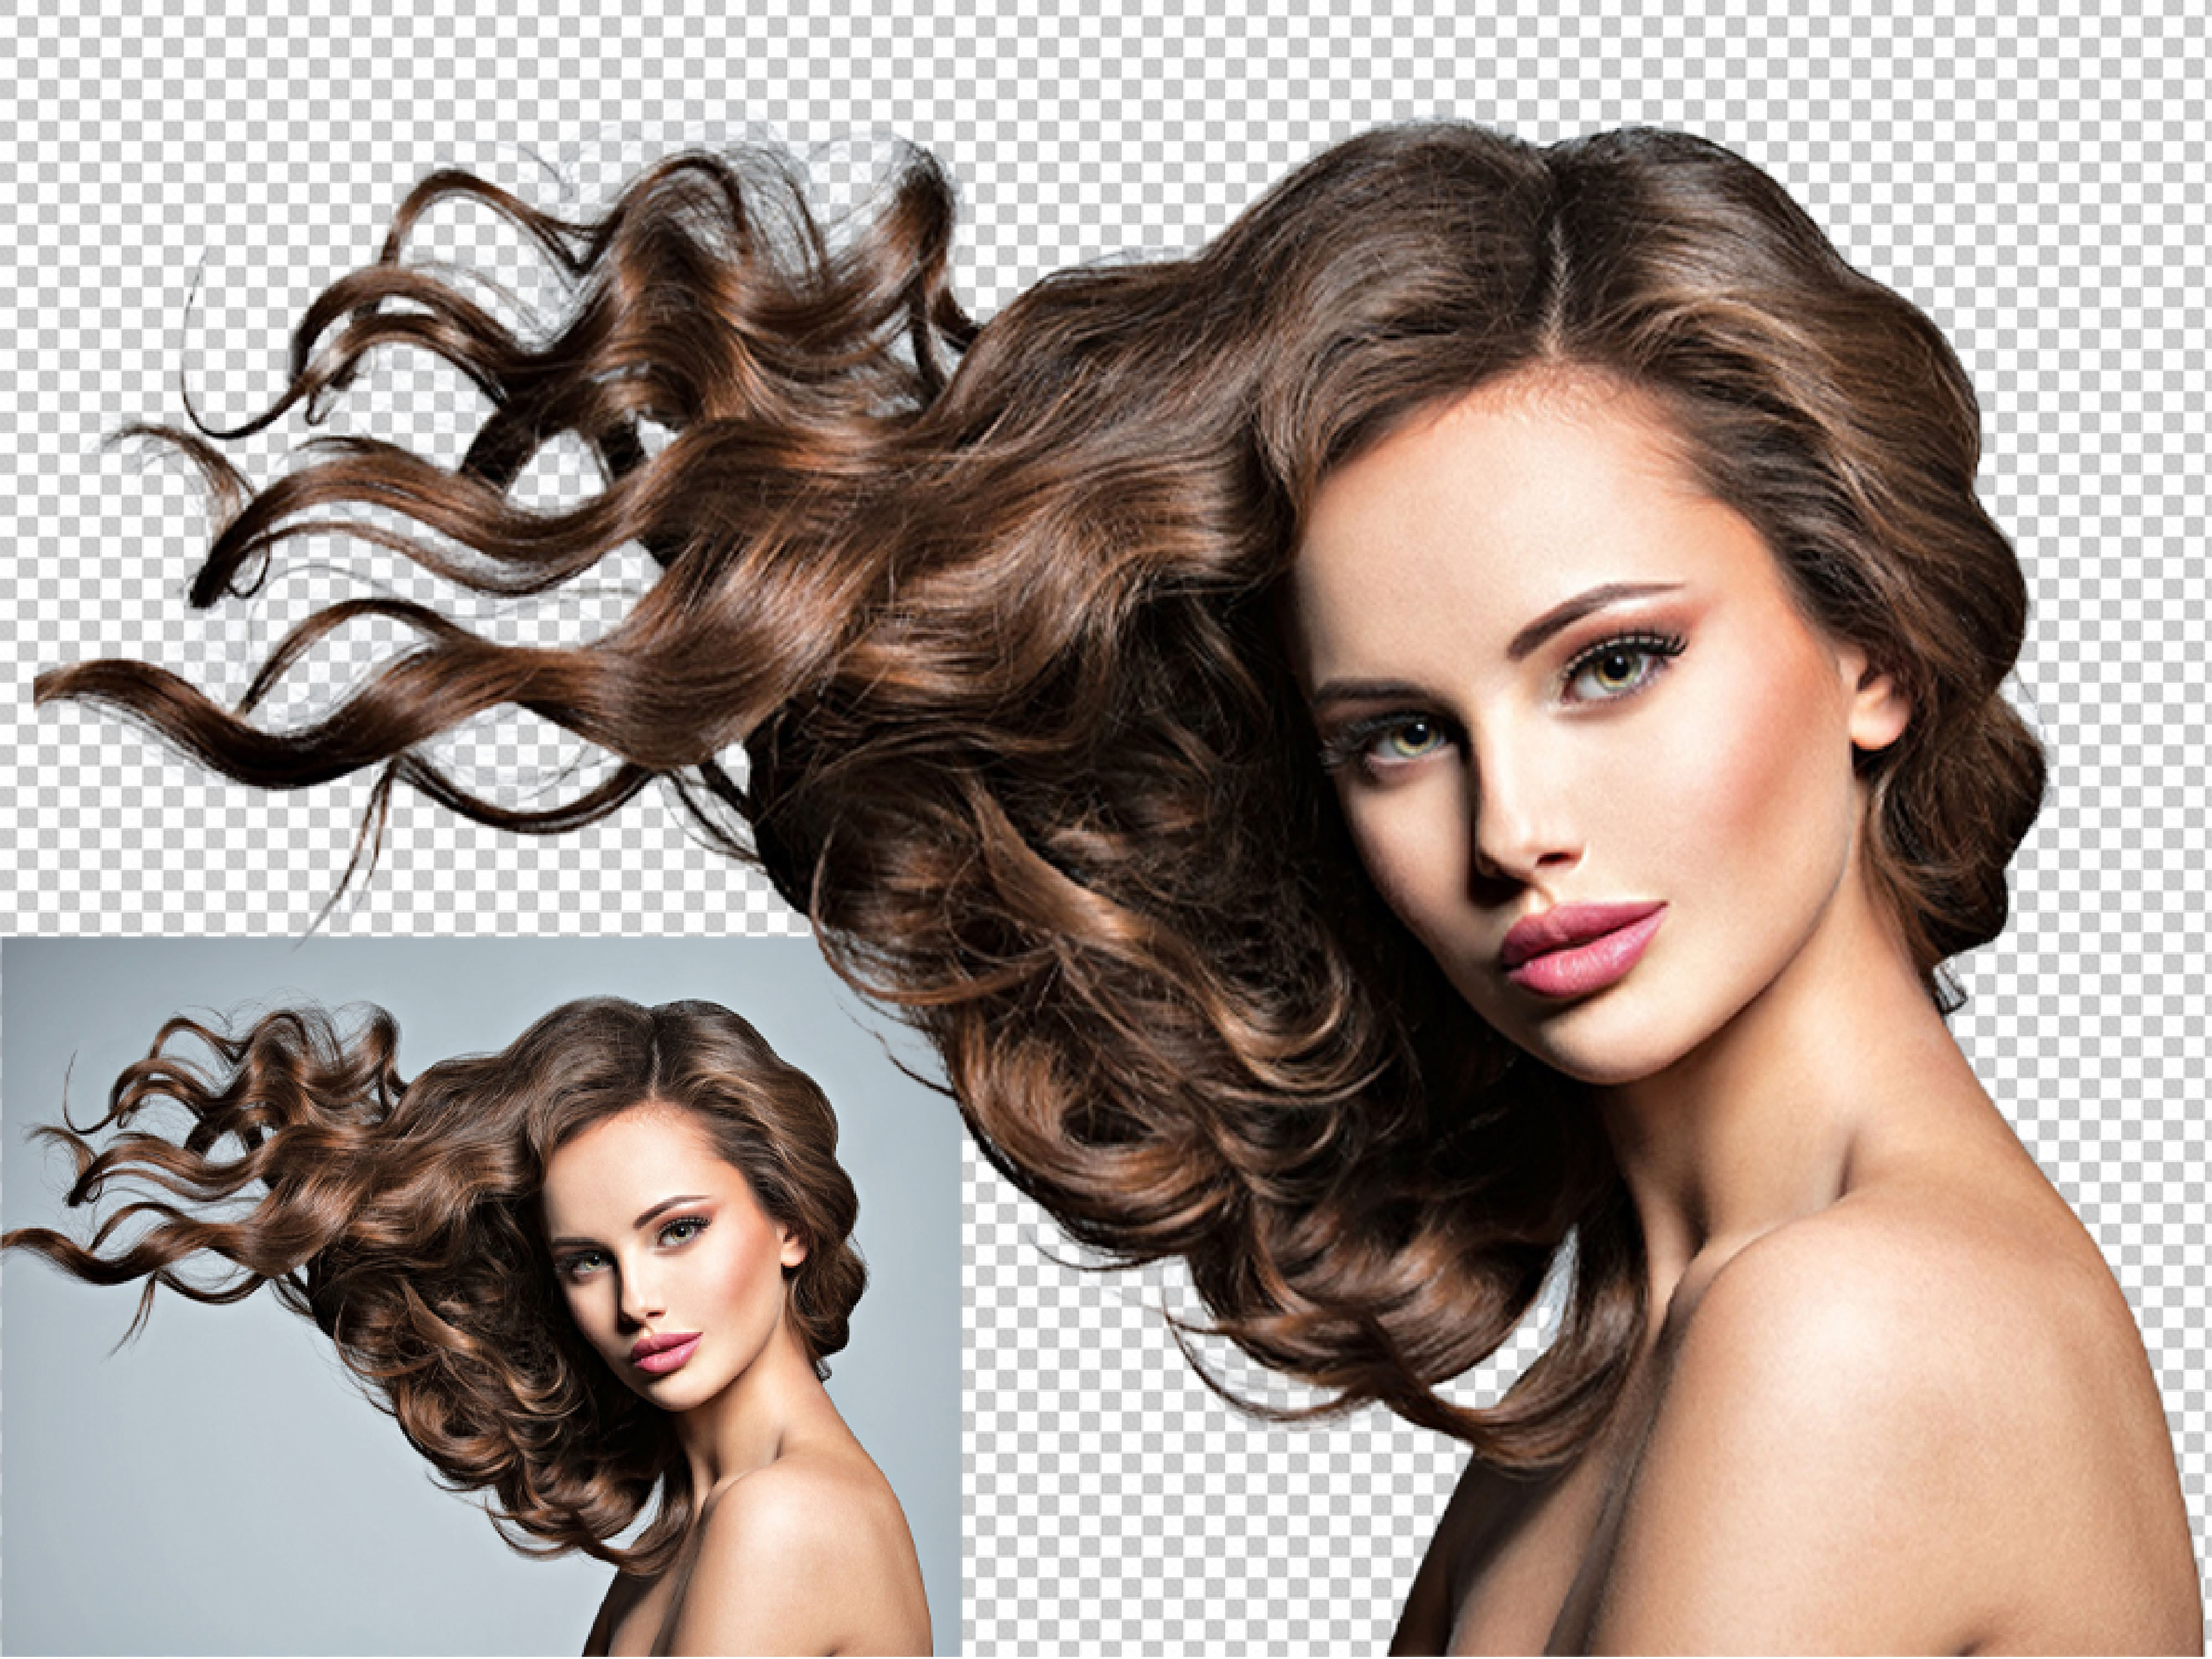 You will get Nice background removal service with guarantee